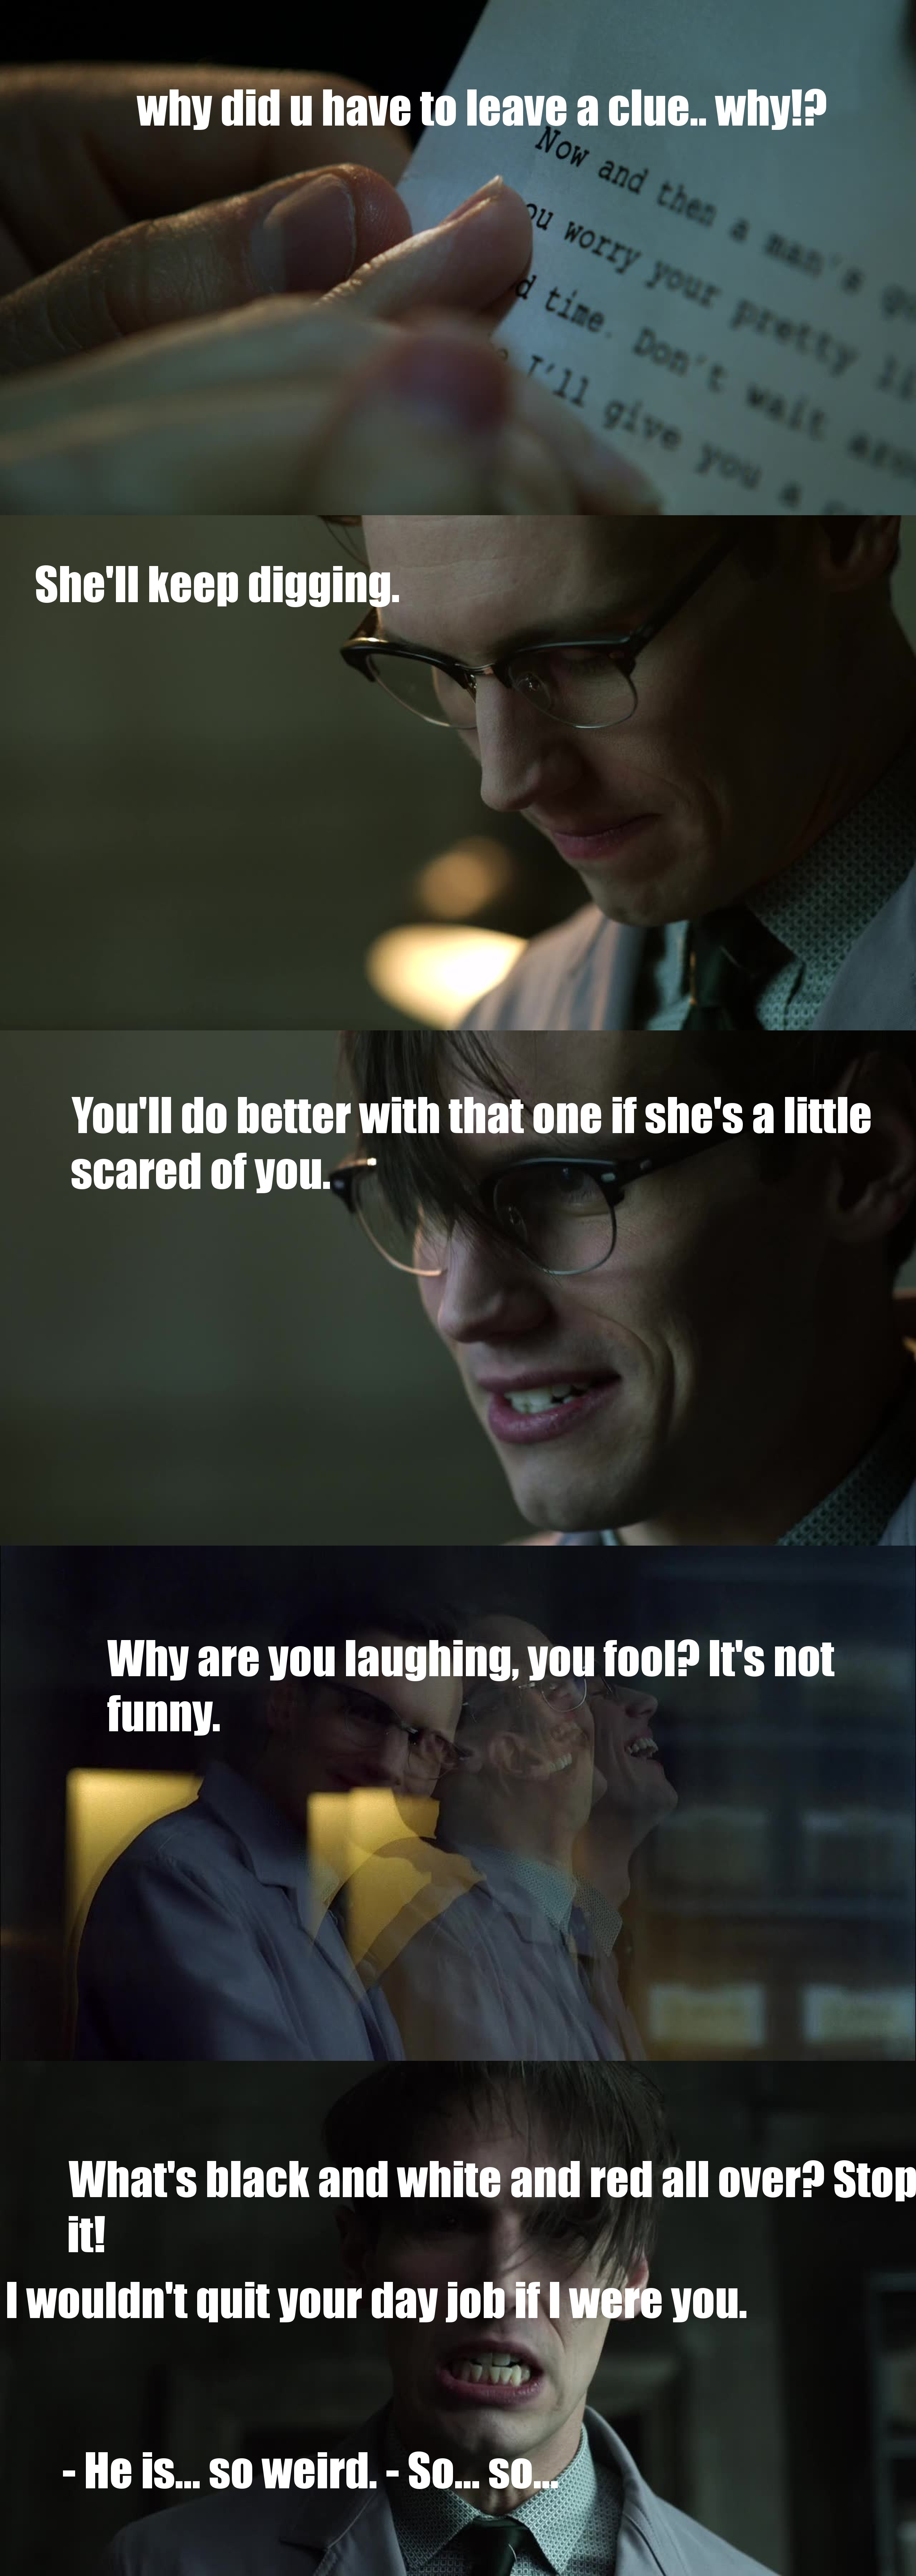 Nygma's moment was priceless!